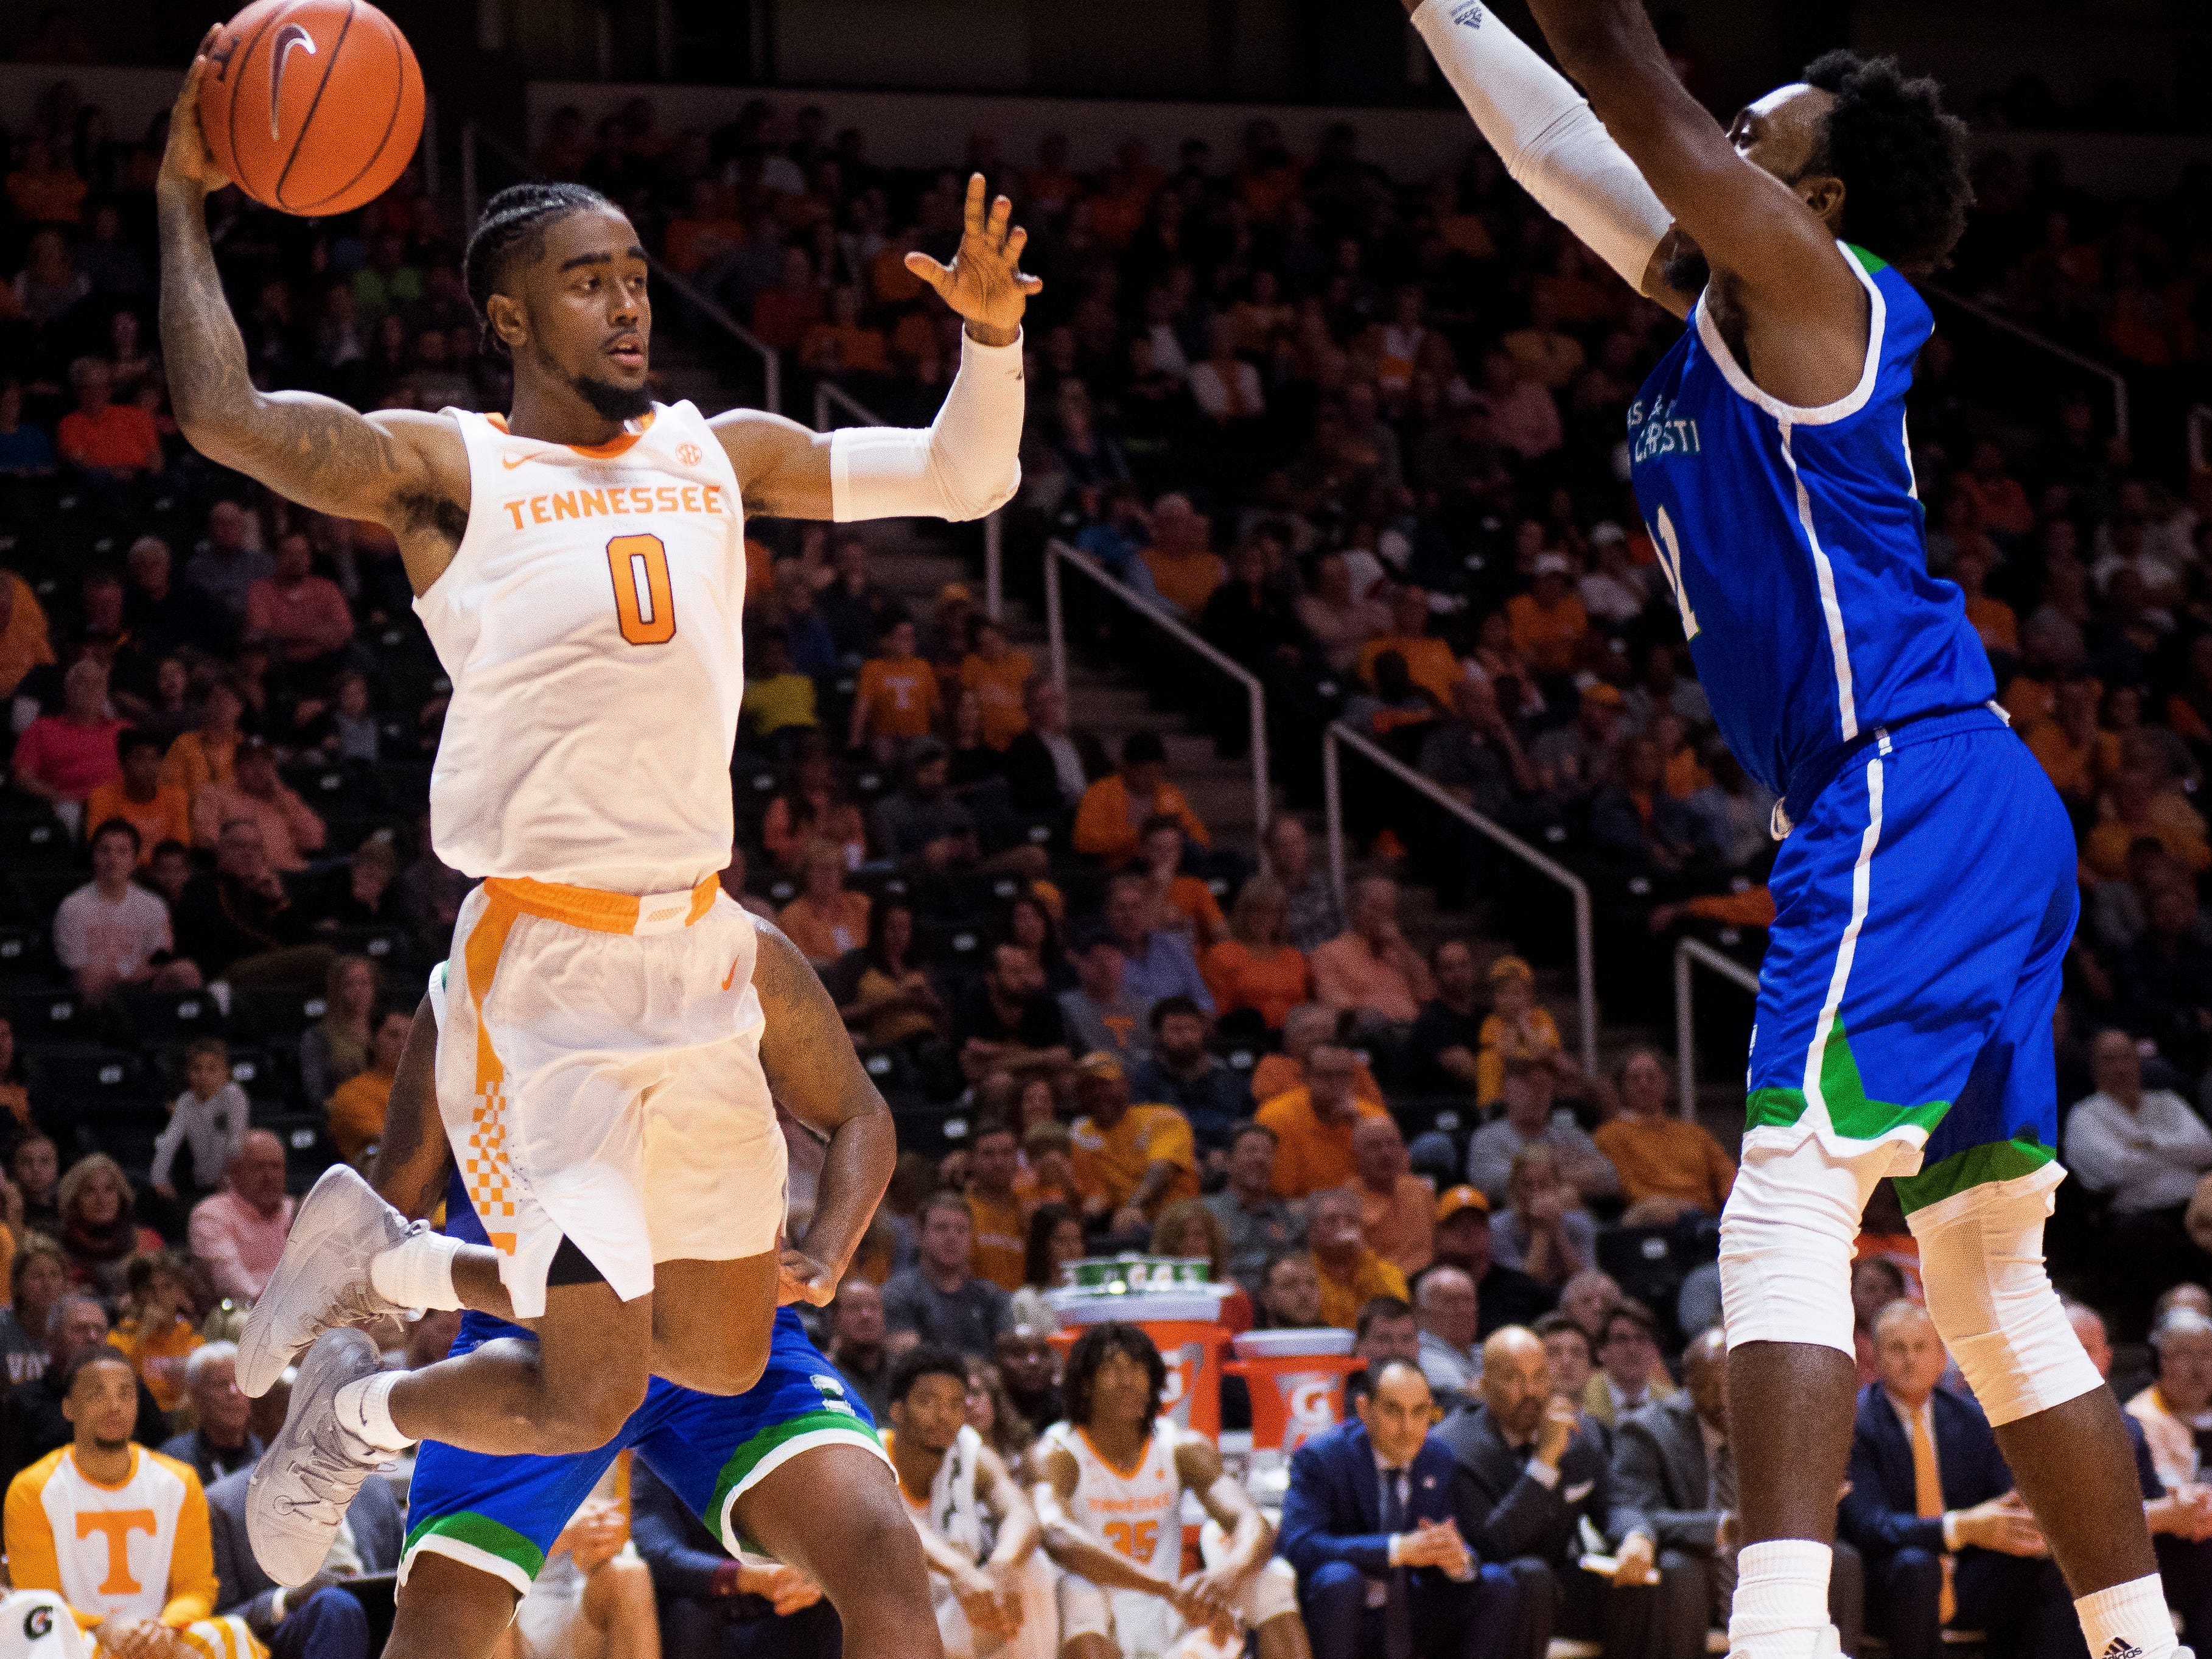 Tennessee guard Jordan Bone (0) passes the ball to a teammate during the second half of the Tennessee Volunteers' home basketball game against the Texas A&M-Corpus Christi Islanders at Thompson-Boling Arena on Sunday, December 2, 2018.